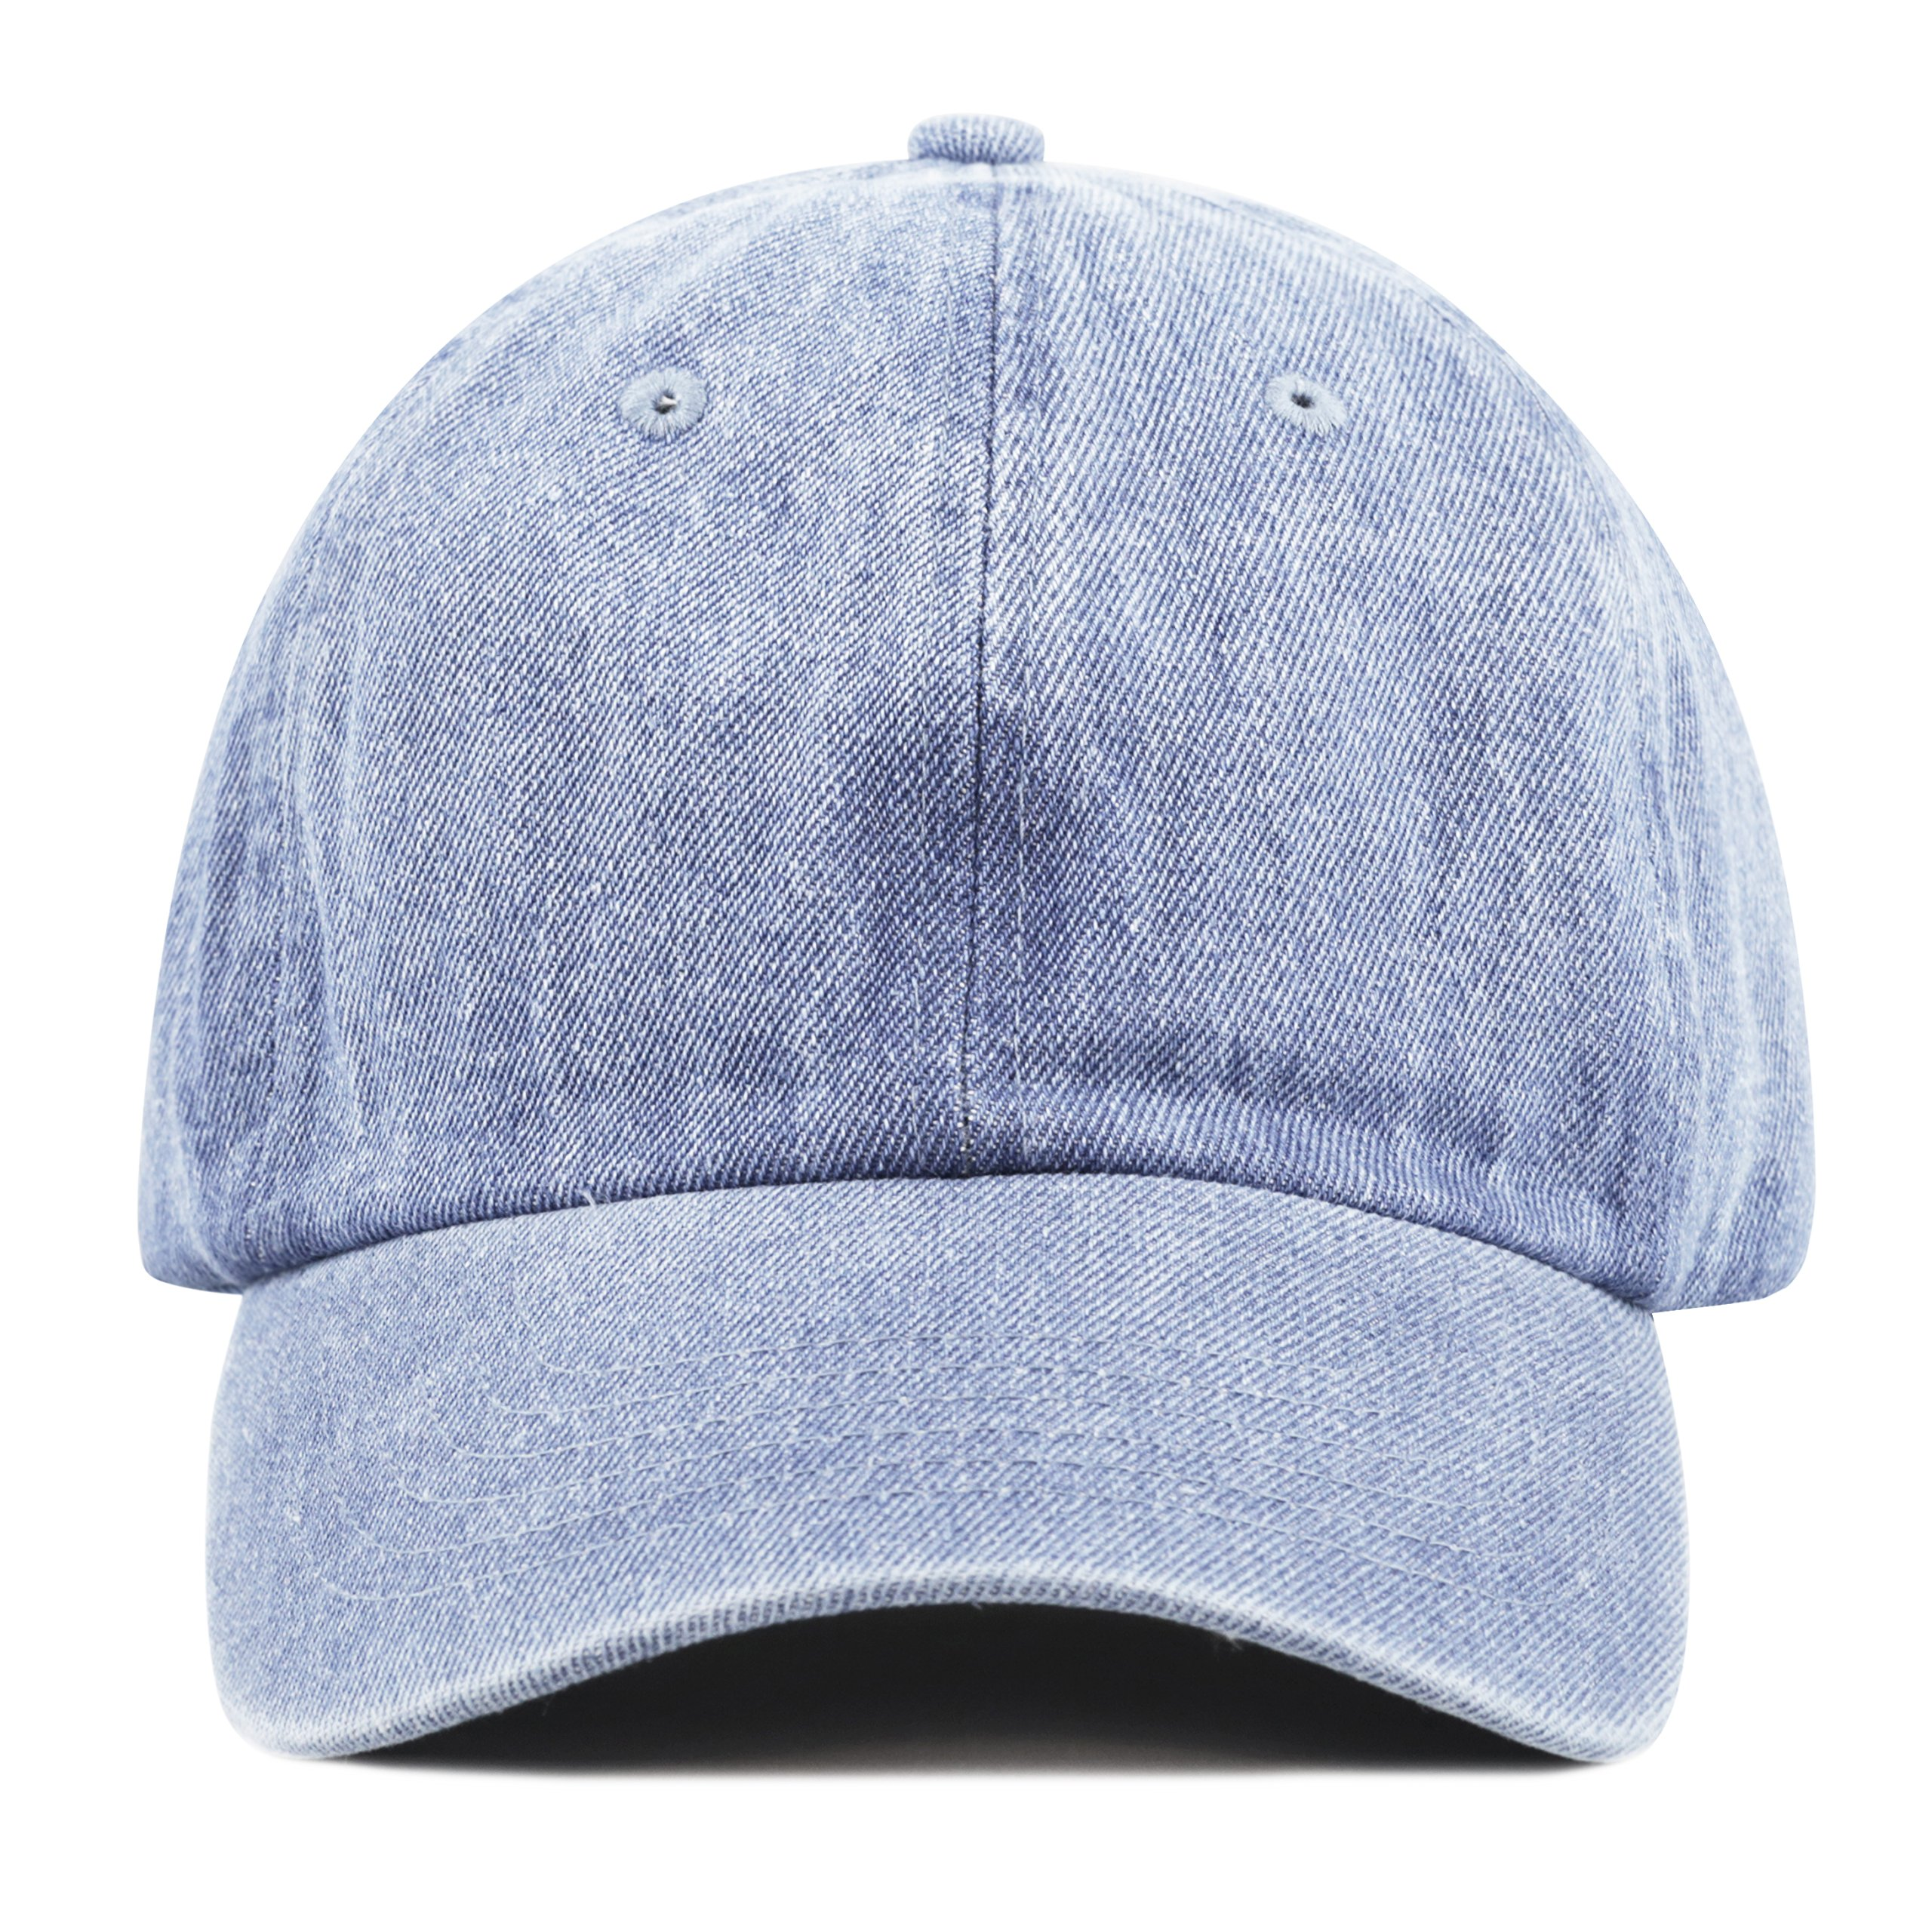 THE HAT DEPOT Kids Washed Low Profile Cotton and Denim Baseball Cap (Light Denim) by THE HAT DEPOT (Image #2)